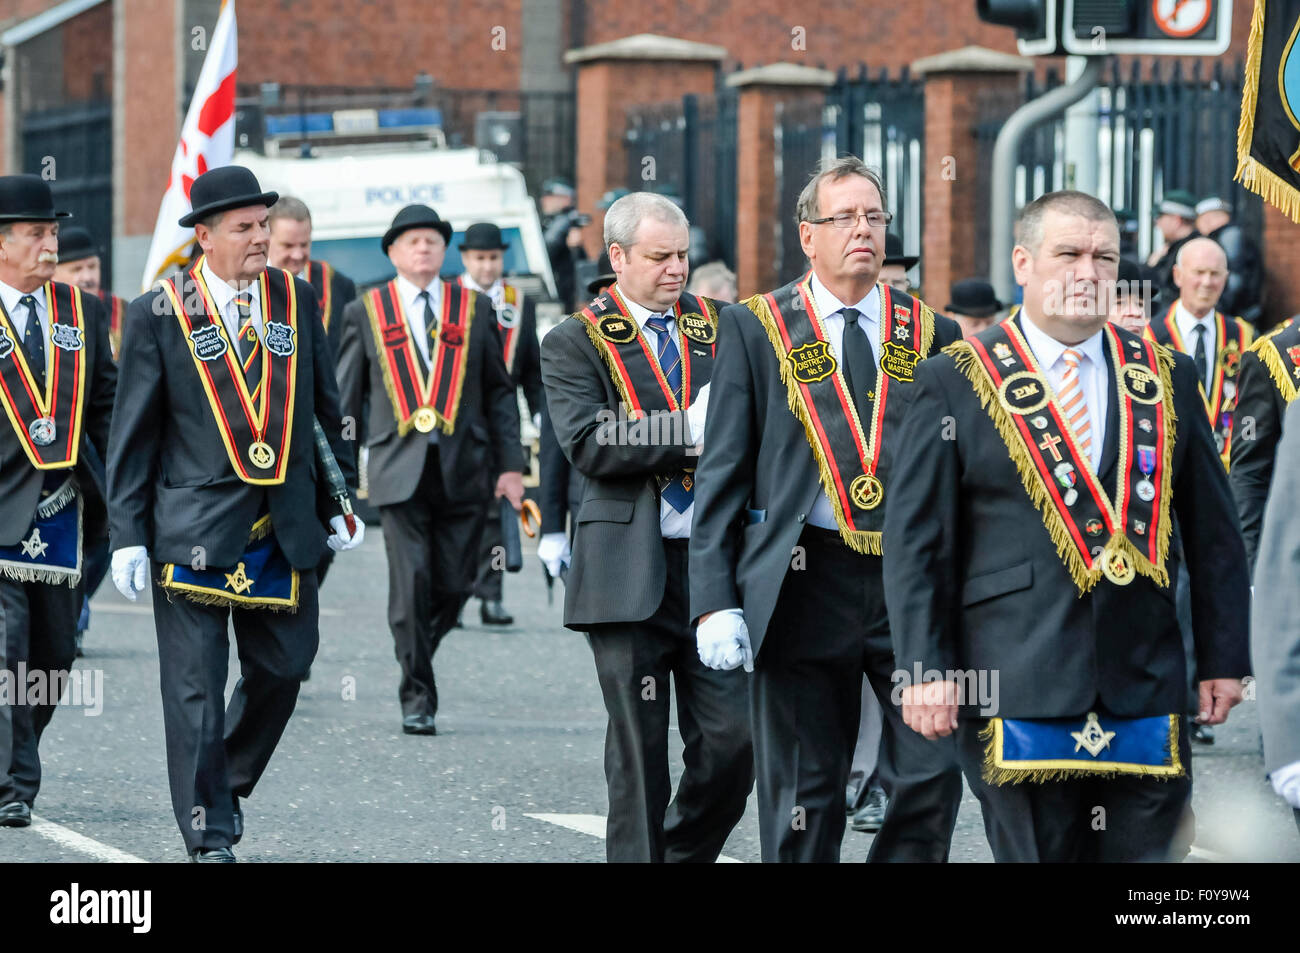 Belfast, Northern Ireland. 23 Aug 2015 - Belfast District of the Royal Black Preceptory, one of the Loyal Orders - Stock Image